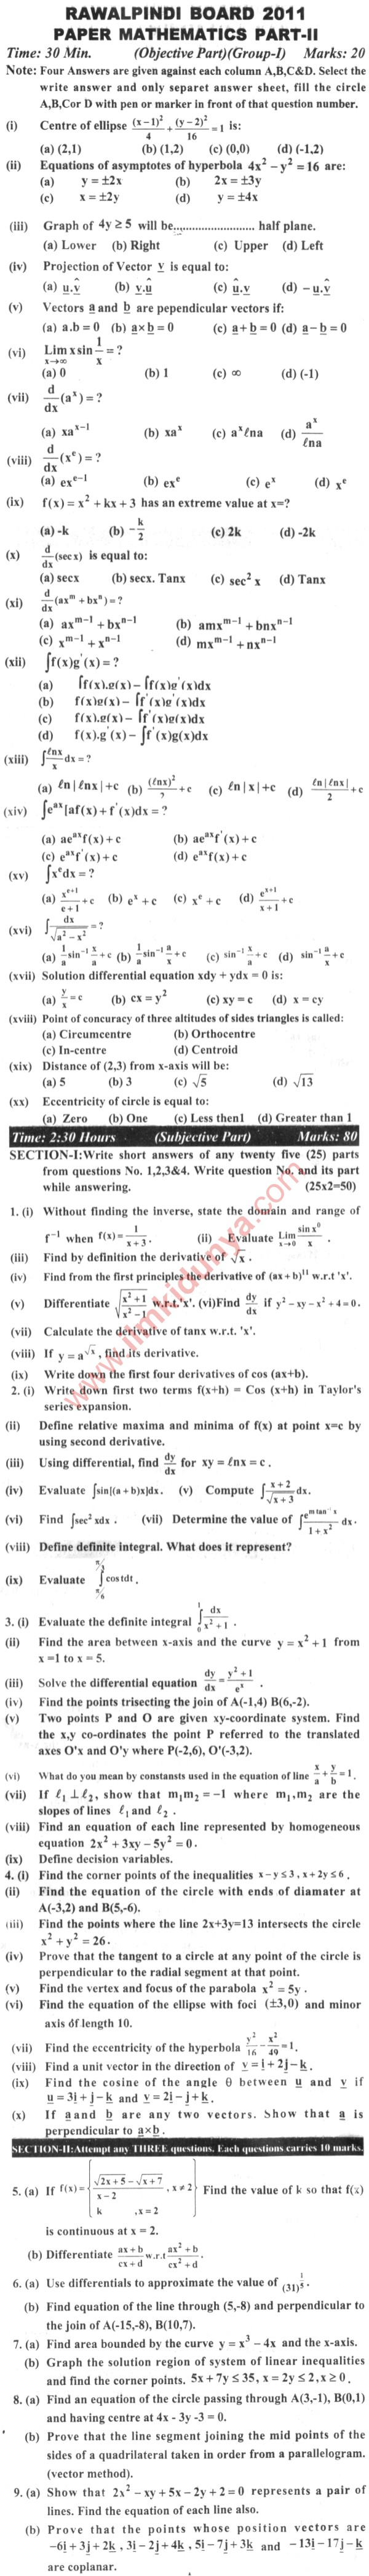 past papers of intermediate part 2 Past papers of intermediate part-1 fa fsc part-1 ist year click here past papers of intermediate part-1 fa fsc part-1 ist year second time click here model sample.